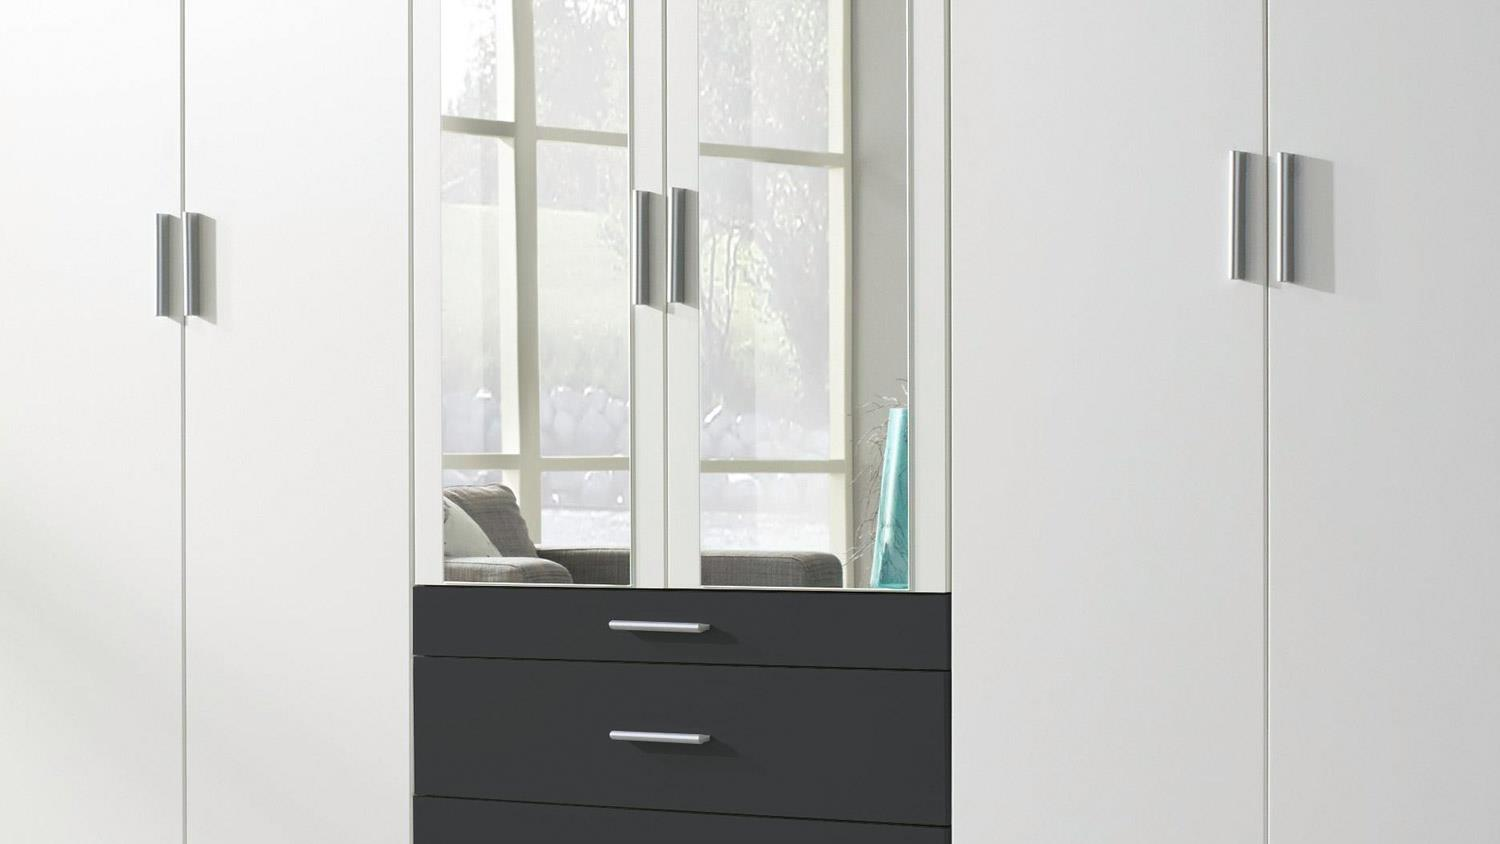 schrank grau brombel bro grau regal ordner schrank mit. Black Bedroom Furniture Sets. Home Design Ideas